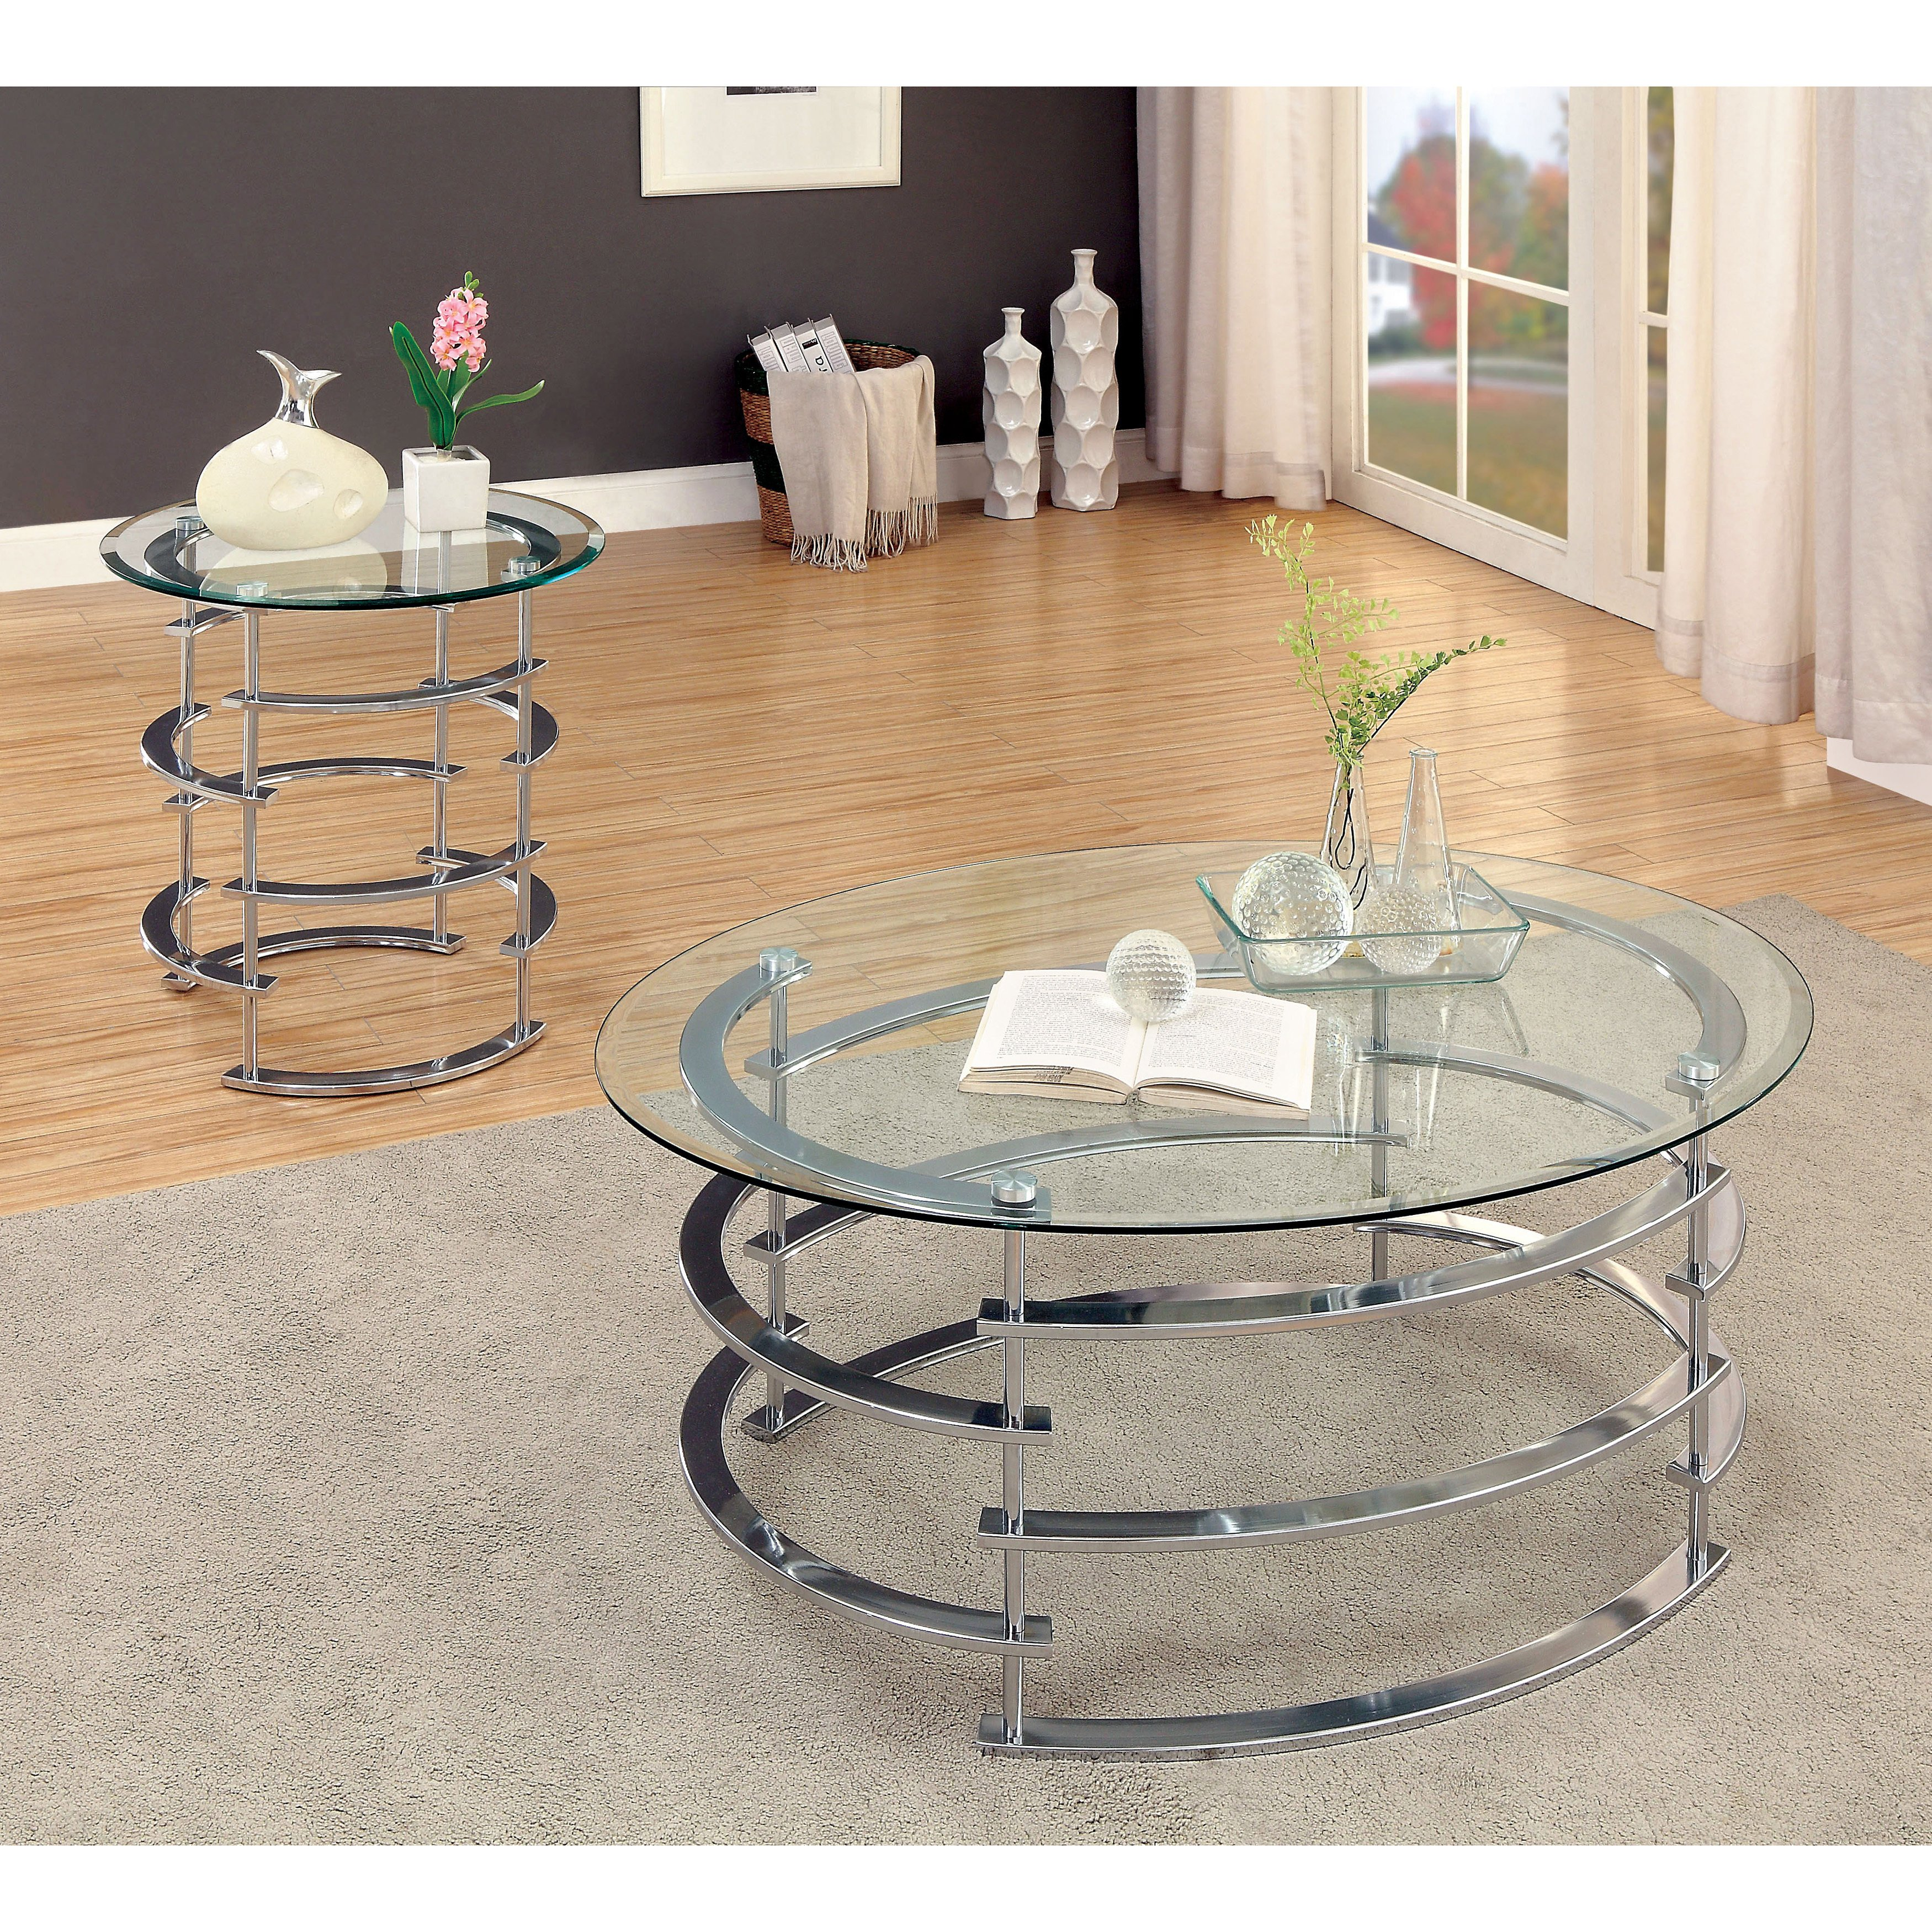 silver orchid marcello contemporary piece glass top accent table set tables rustic metal legs ashley furniture with wheels black end lamp attached decor percussion stool pottery